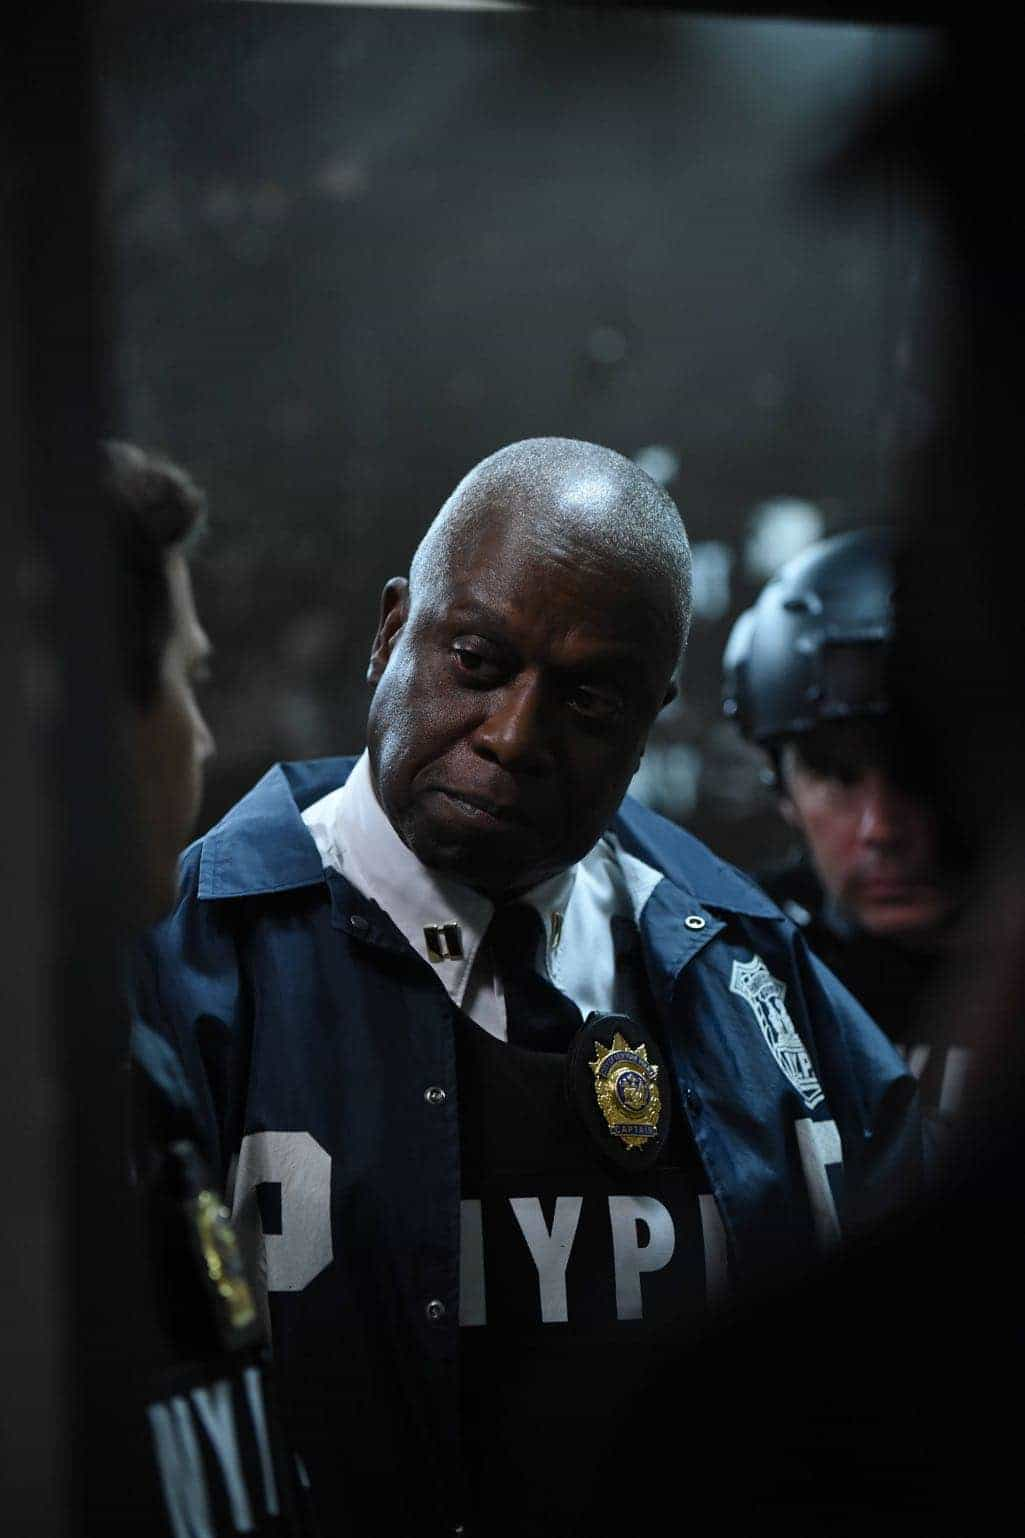 """BROOKLYN NINE-NINE: Andrew Braugher in the """"The Overmining"""" episode of BROOKLYN NINE-NINE airing Tuesday, Dec. 6 (8:00-8:31 PM ET/PT) on FOX. CR: Ray Mickshaw/FOX"""